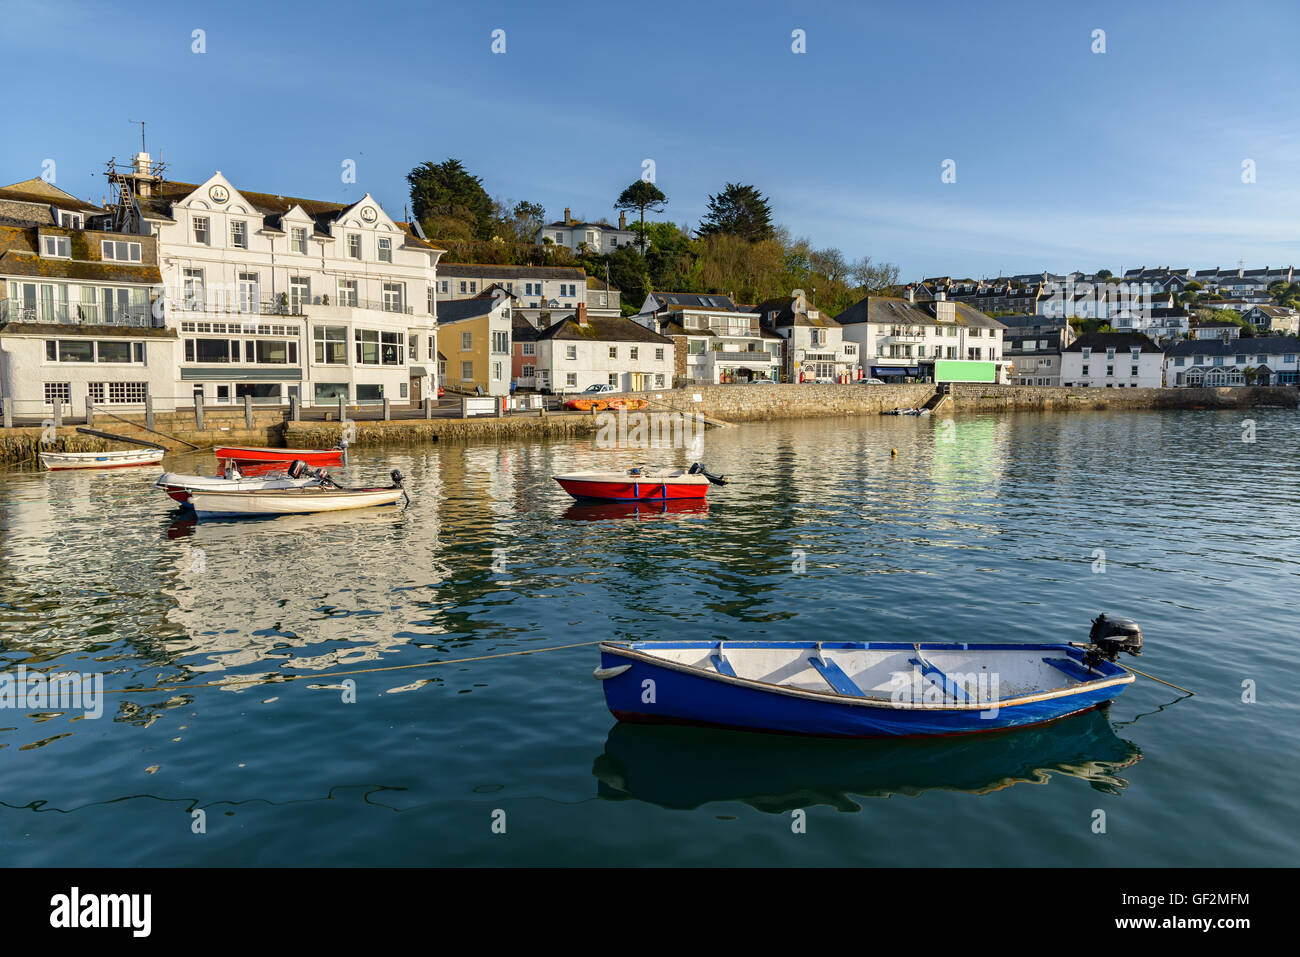 St Mawes is a small town opposite Falmouth, on the Roseland Peninsula on the south coast of Cornwall, England, United - Stock Image